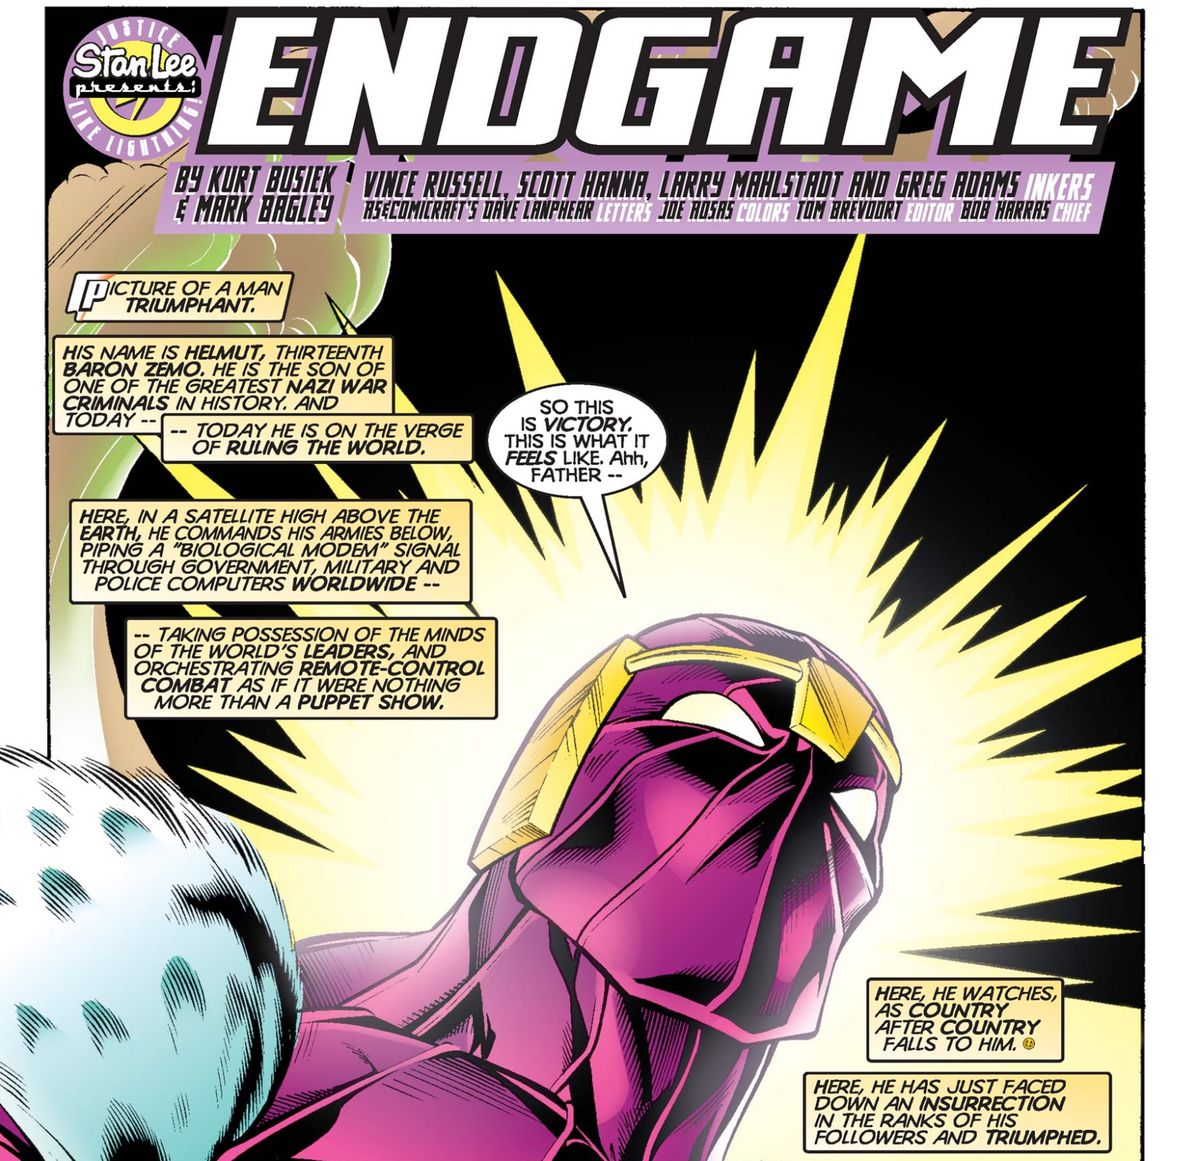 Avengers 4's Endgame title has a history in Marvel Comics